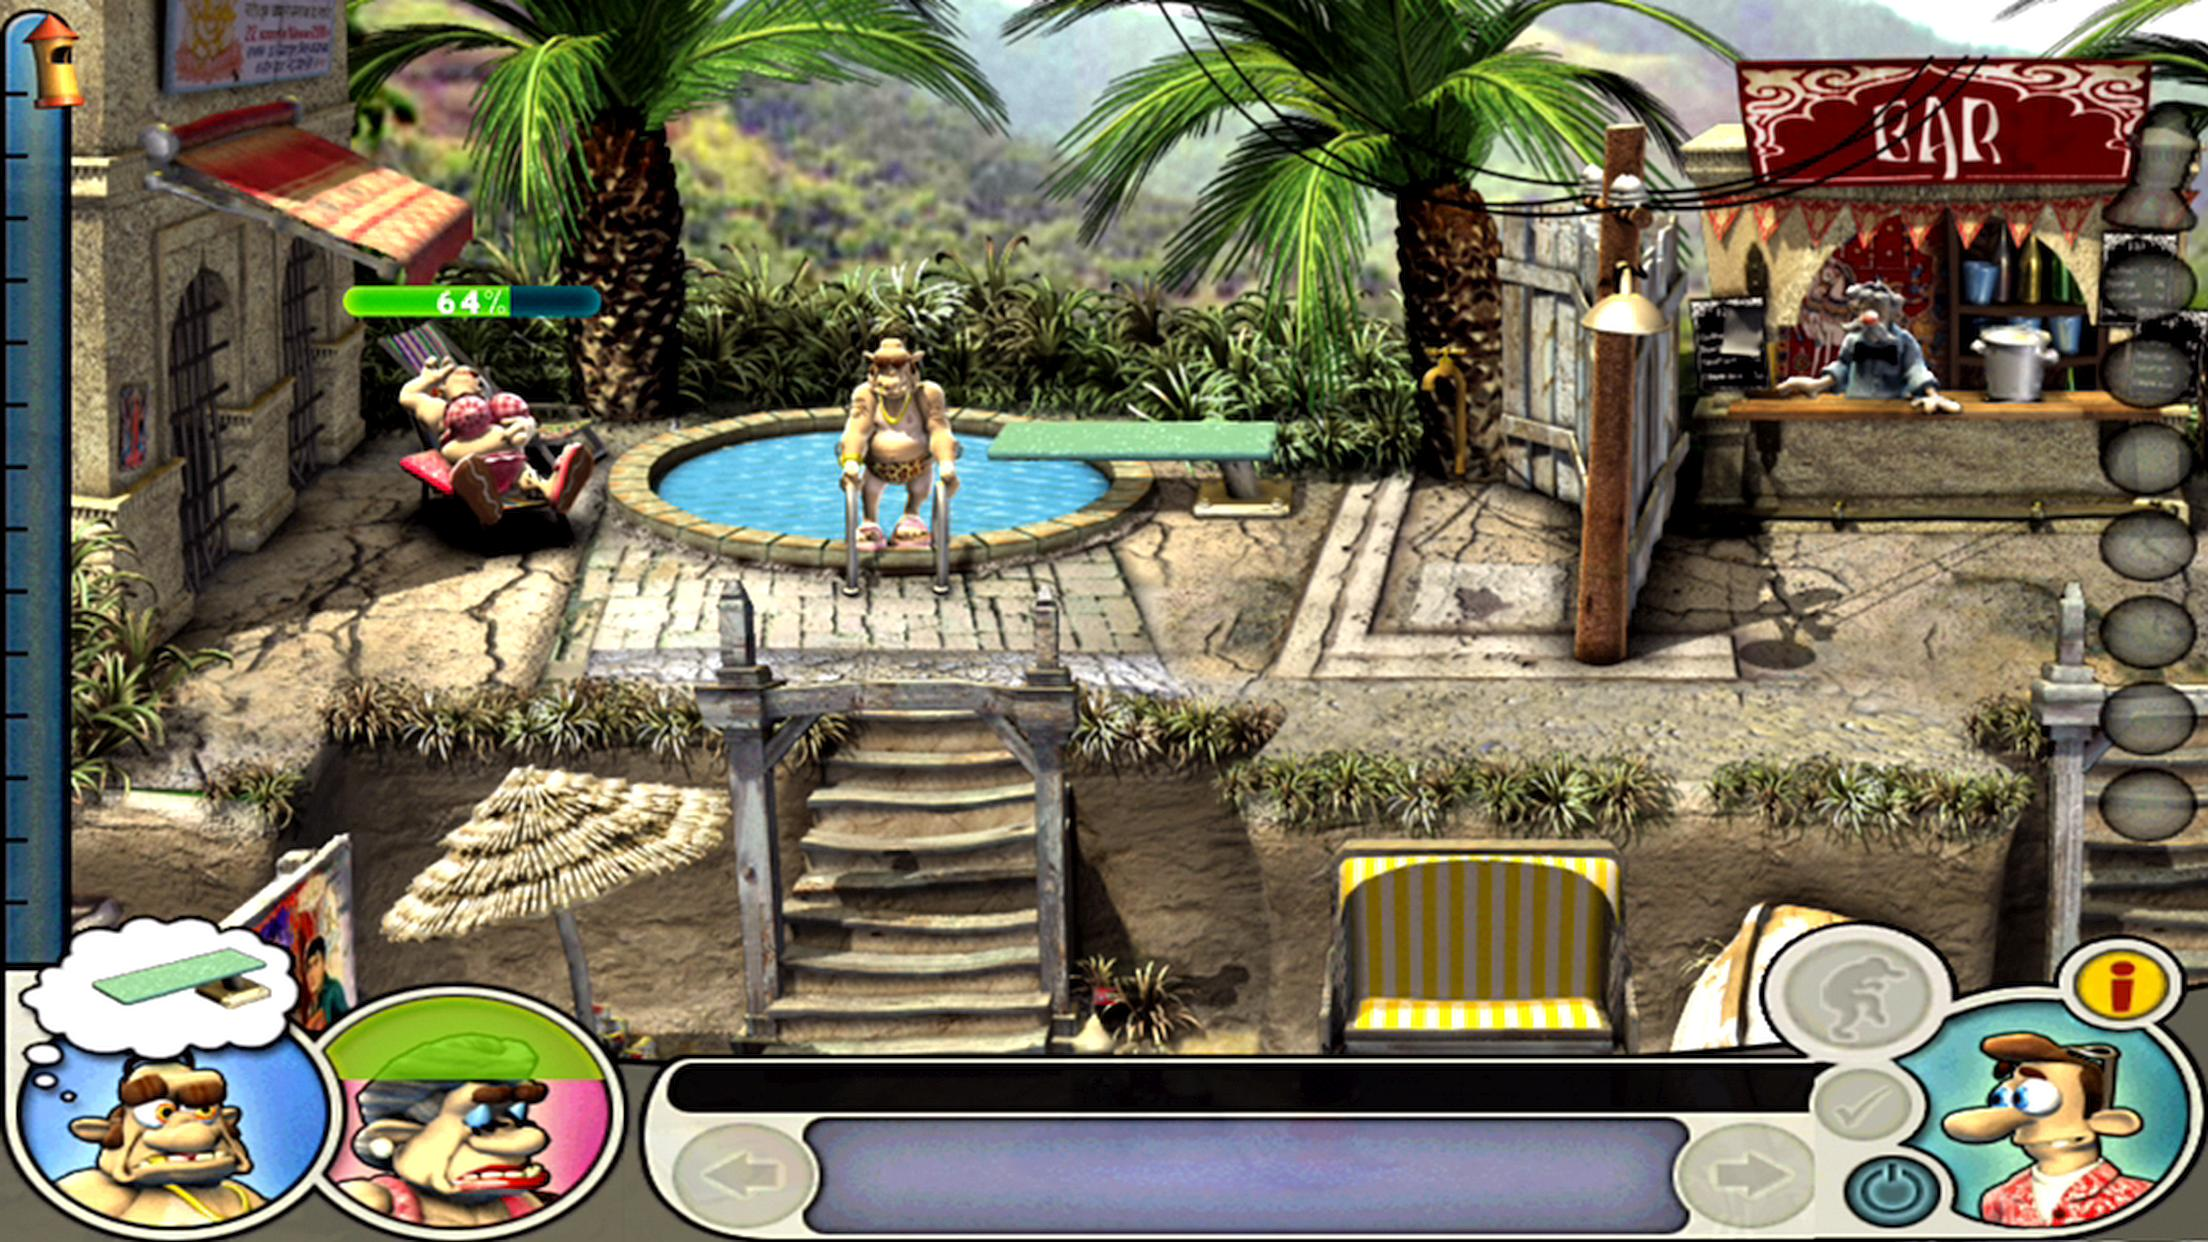 Download full game neighbours from hell 2 casinos in illinois map